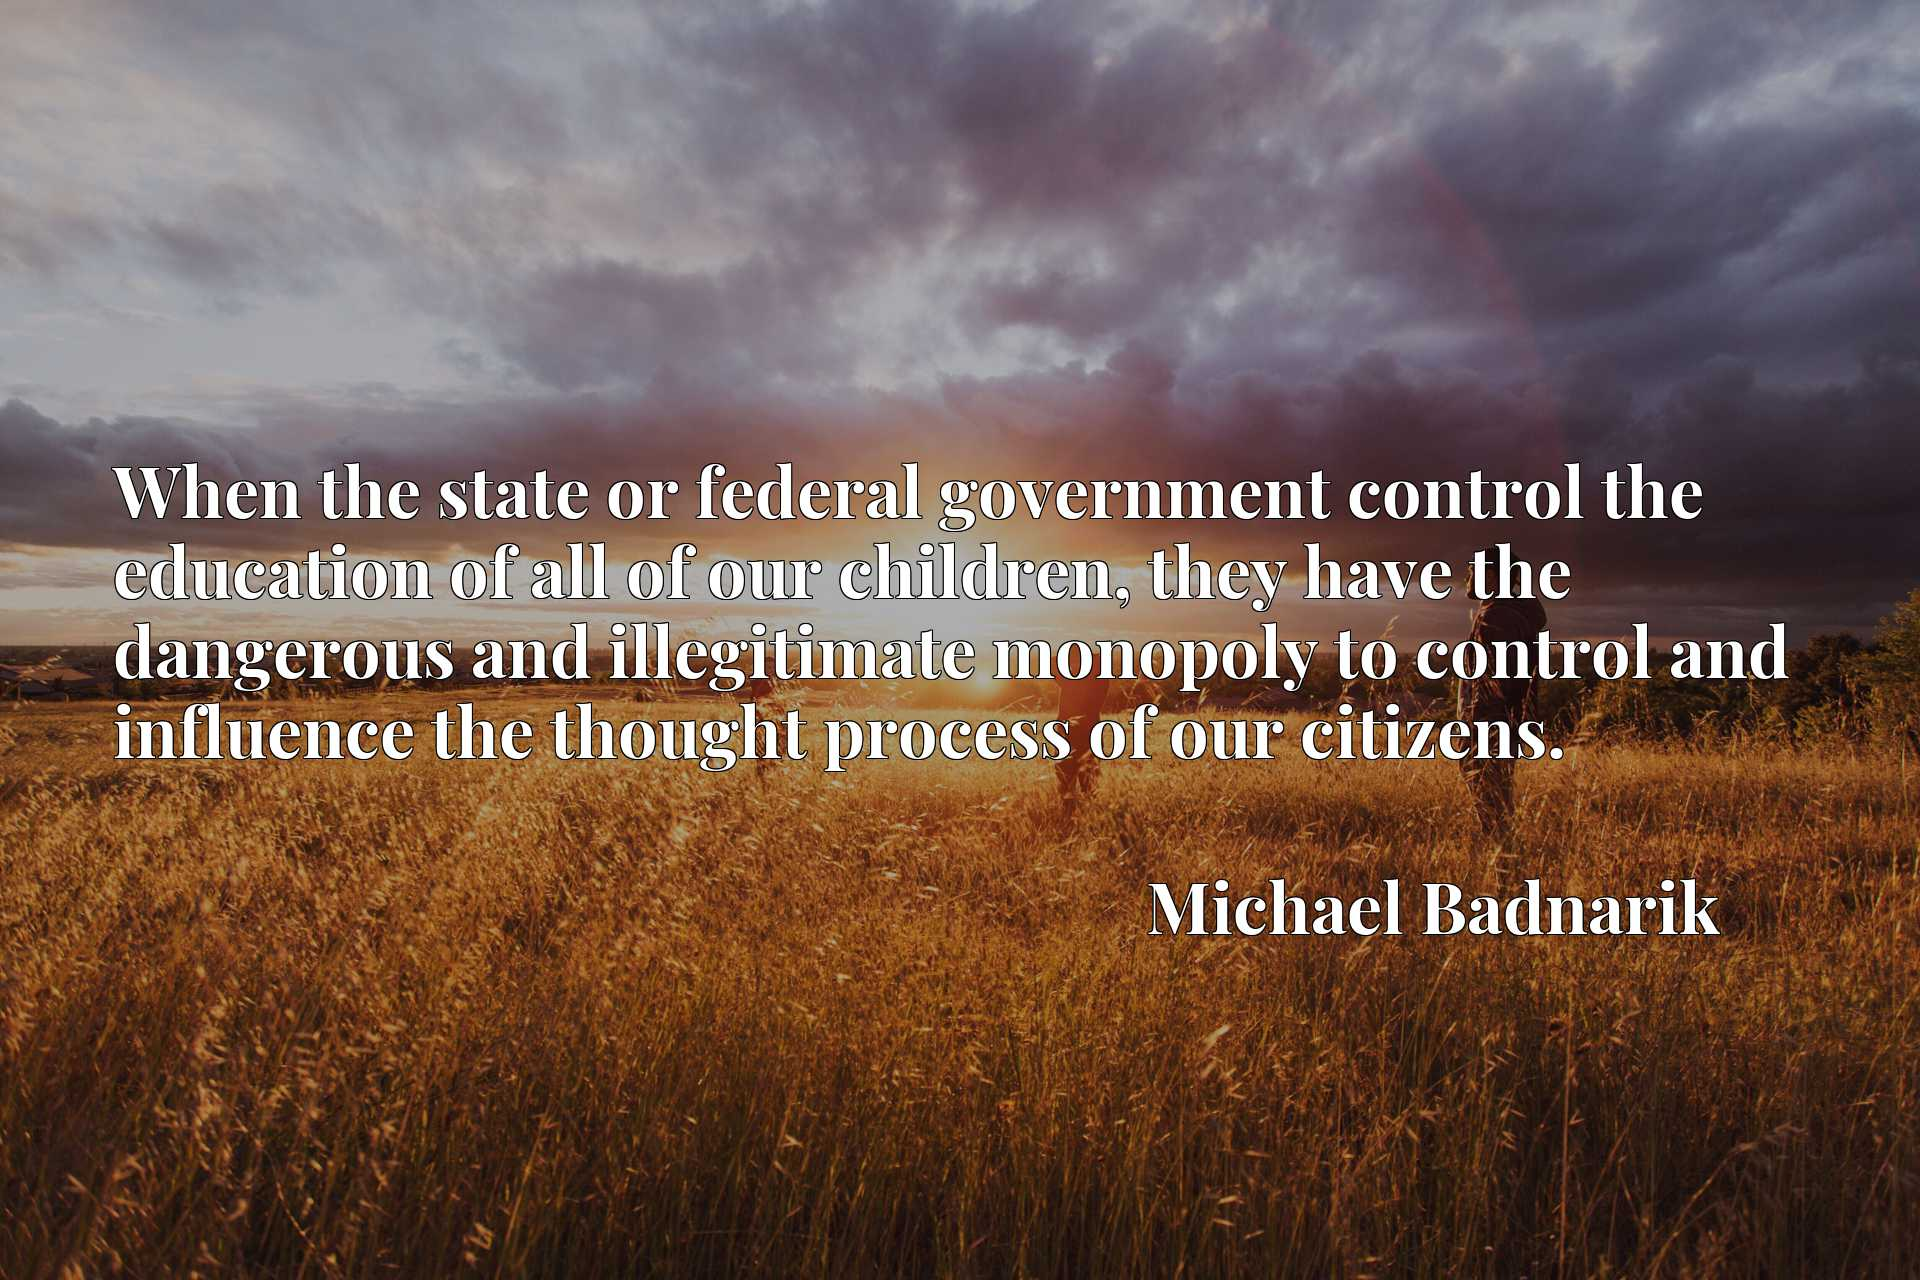 When the state or federal government control the education of all of our children, they have the dangerous and illegitimate monopoly to control and influence the thought process of our citizens.